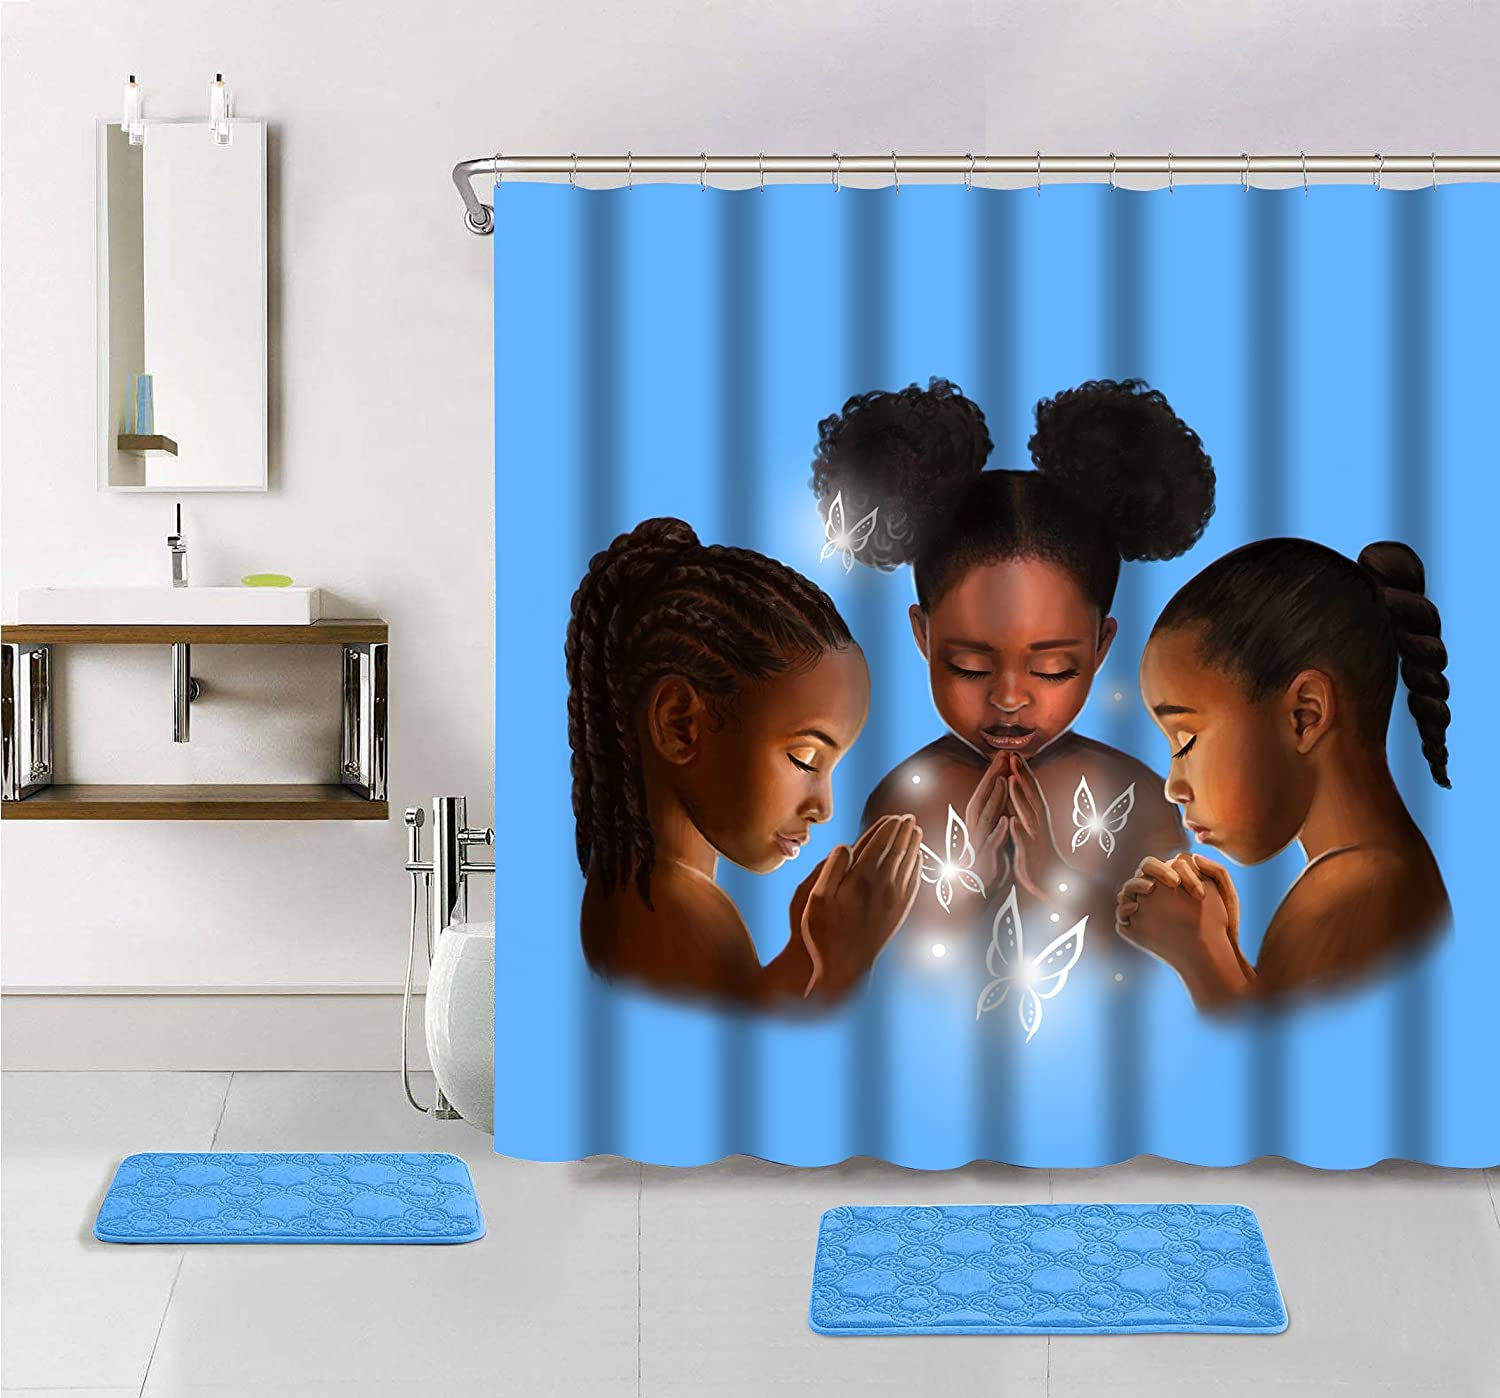 Amazon.com: Praying Girls Shower Curtain: Home & Kitchen